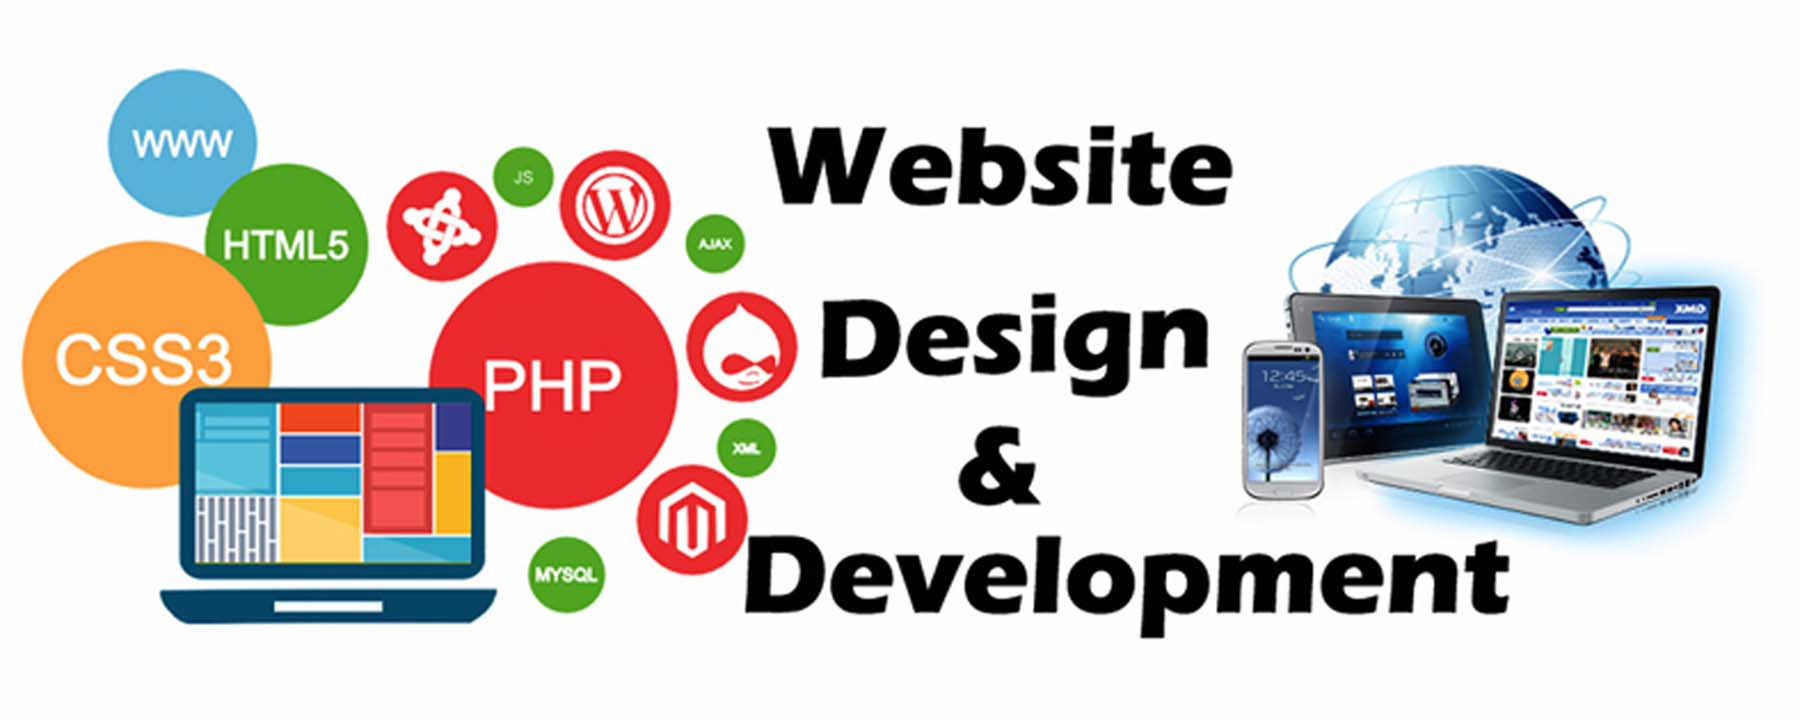 Website Design And Development 2